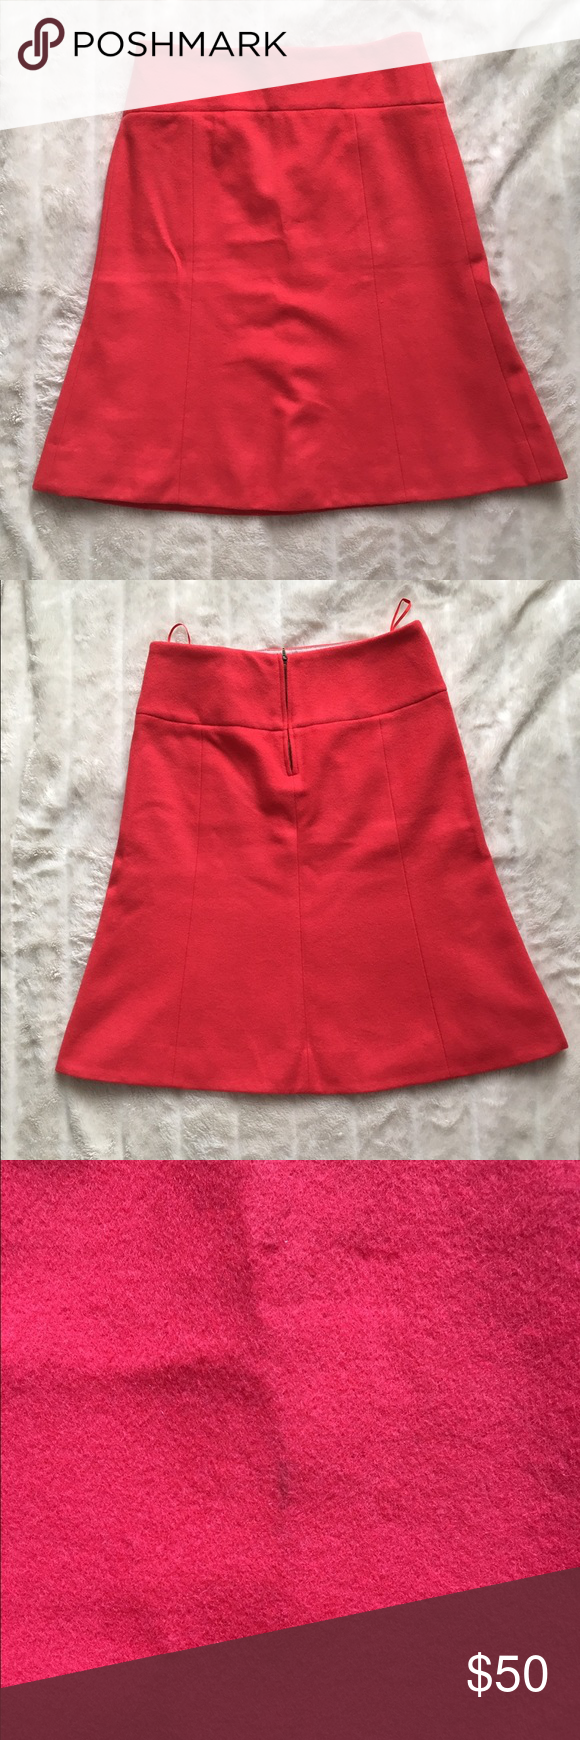 J. Crew Francie Skirt NWT Waist- 14 1/2 inches Length- 21 1/2 inches 75% wool 20% nylon 5% cashmere  🎀Reasonable offers considered🎀 J. Crew Skirts